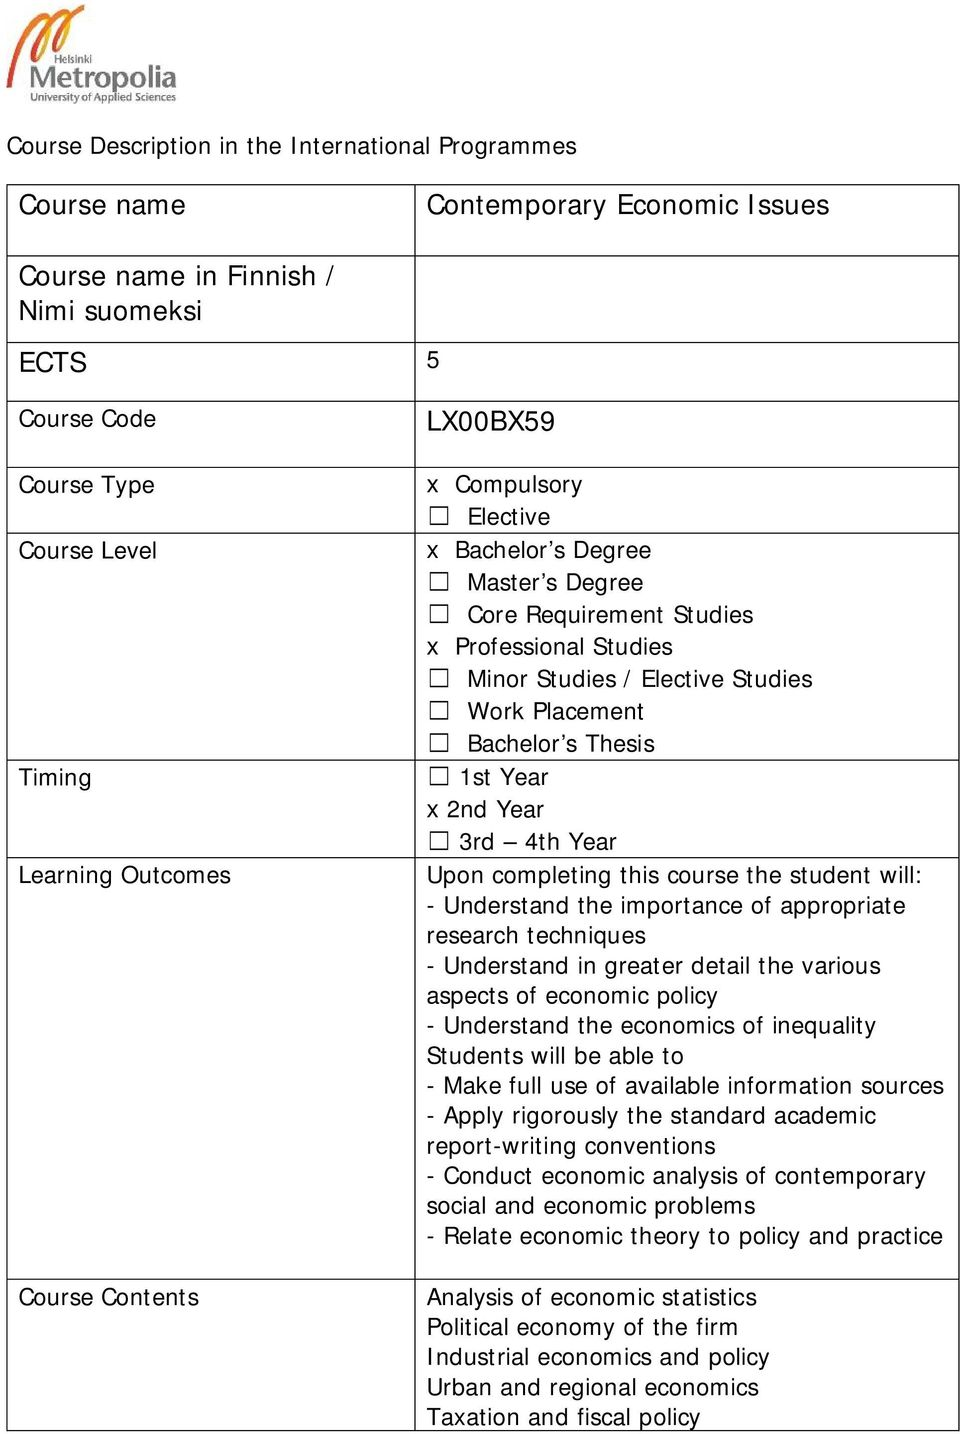 1st Year x 2nd Year 3rd 4th Year Upon completing this course the student will: - Understand the importance of appropriate research techniques - Understand in greater detail the various aspects of